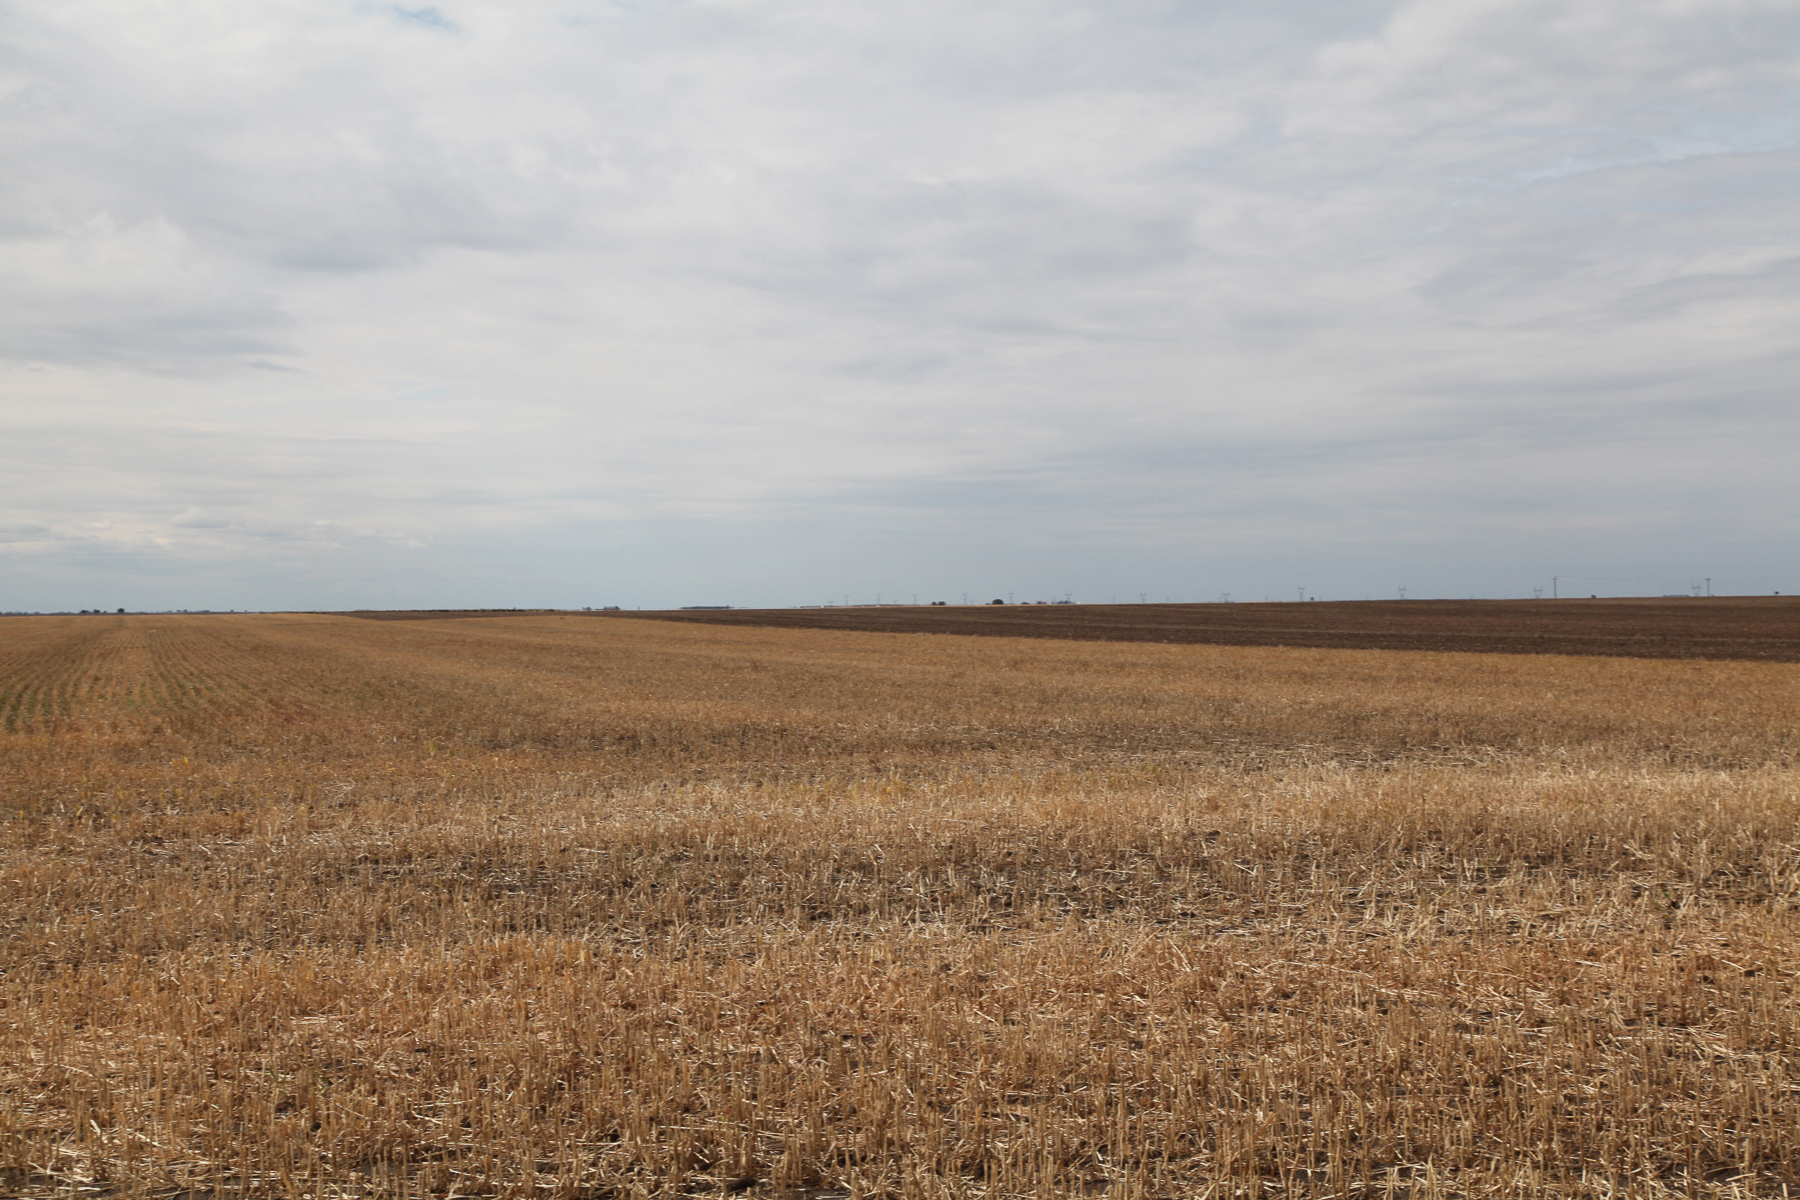 View of Parcel 1 millet stubble